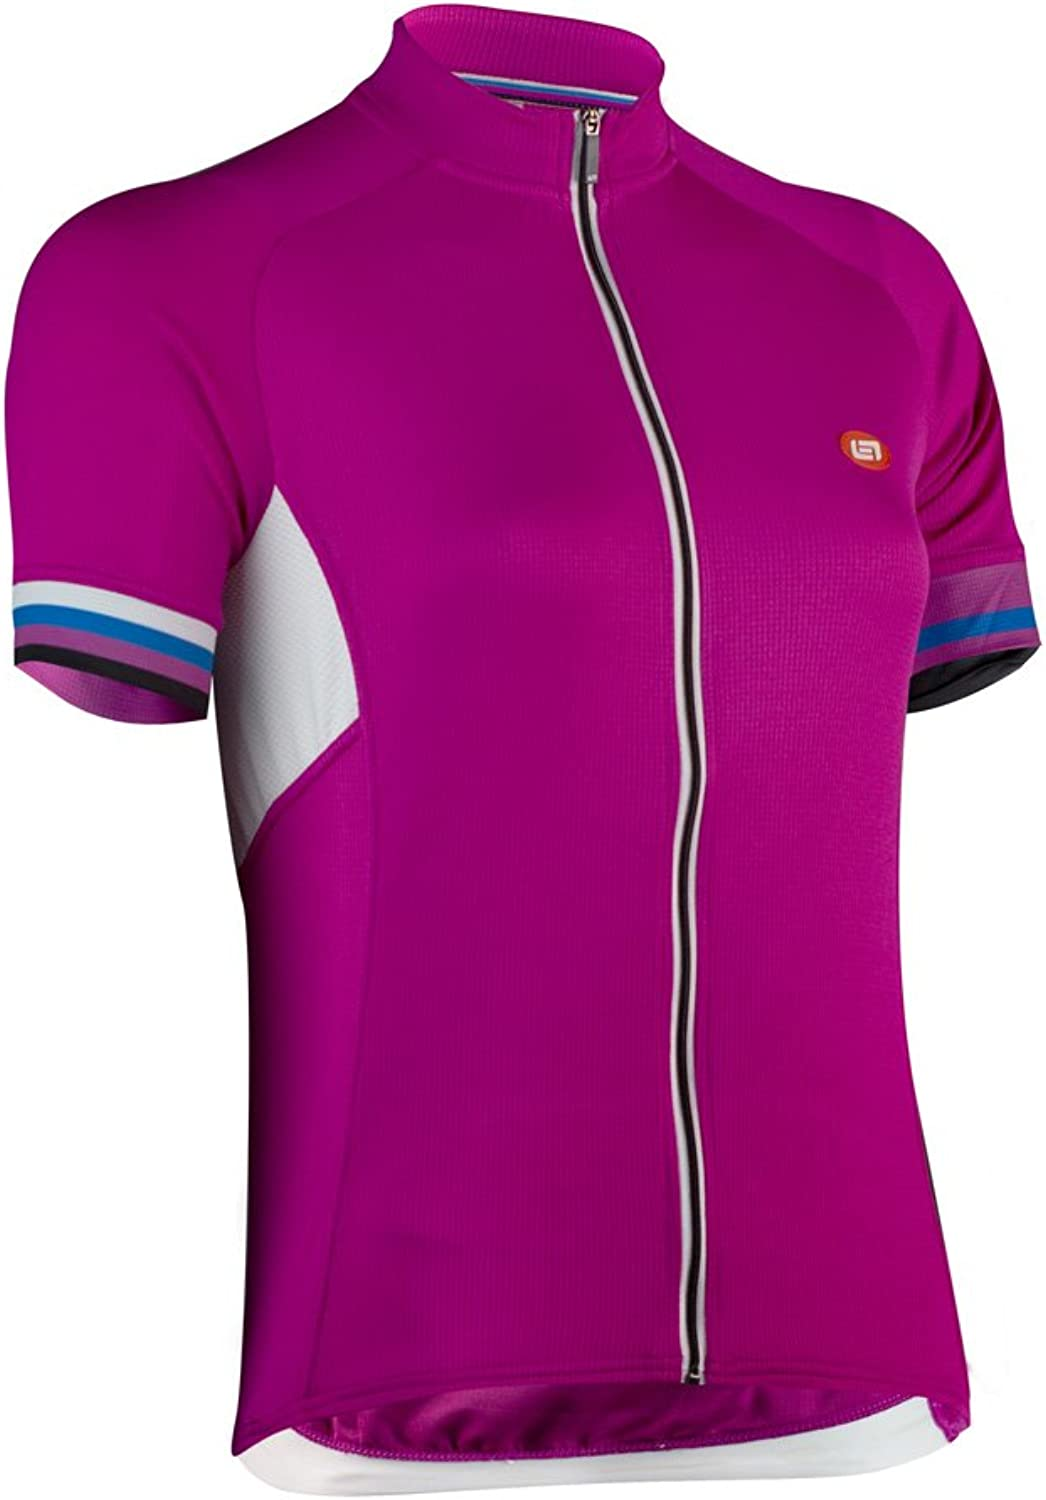 Bellwether 95176481 Women's Forza Jersey, Fuchsia, Extra Small